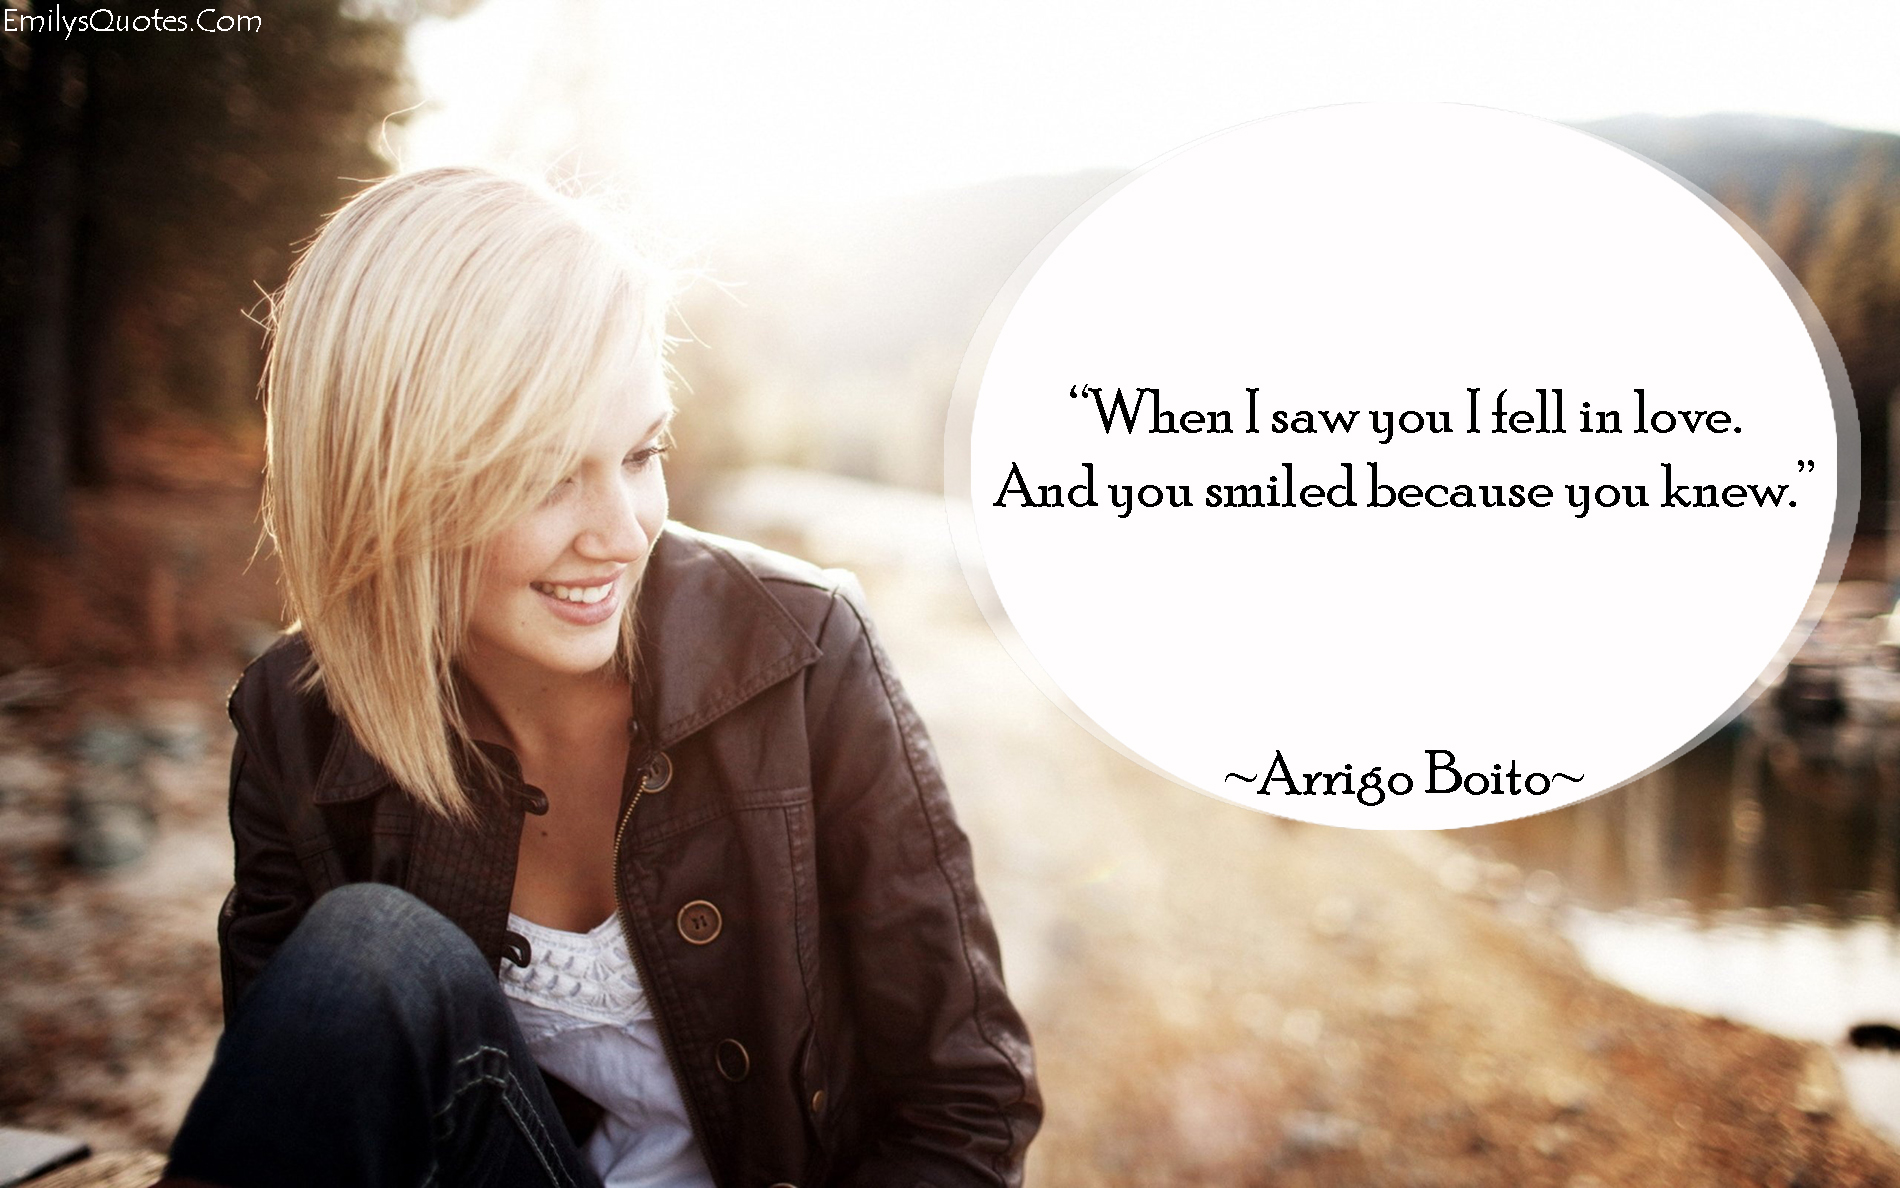 EmilysQuotes.Com - positive, love, romantic, smile, Arrigo Boito, inspirational